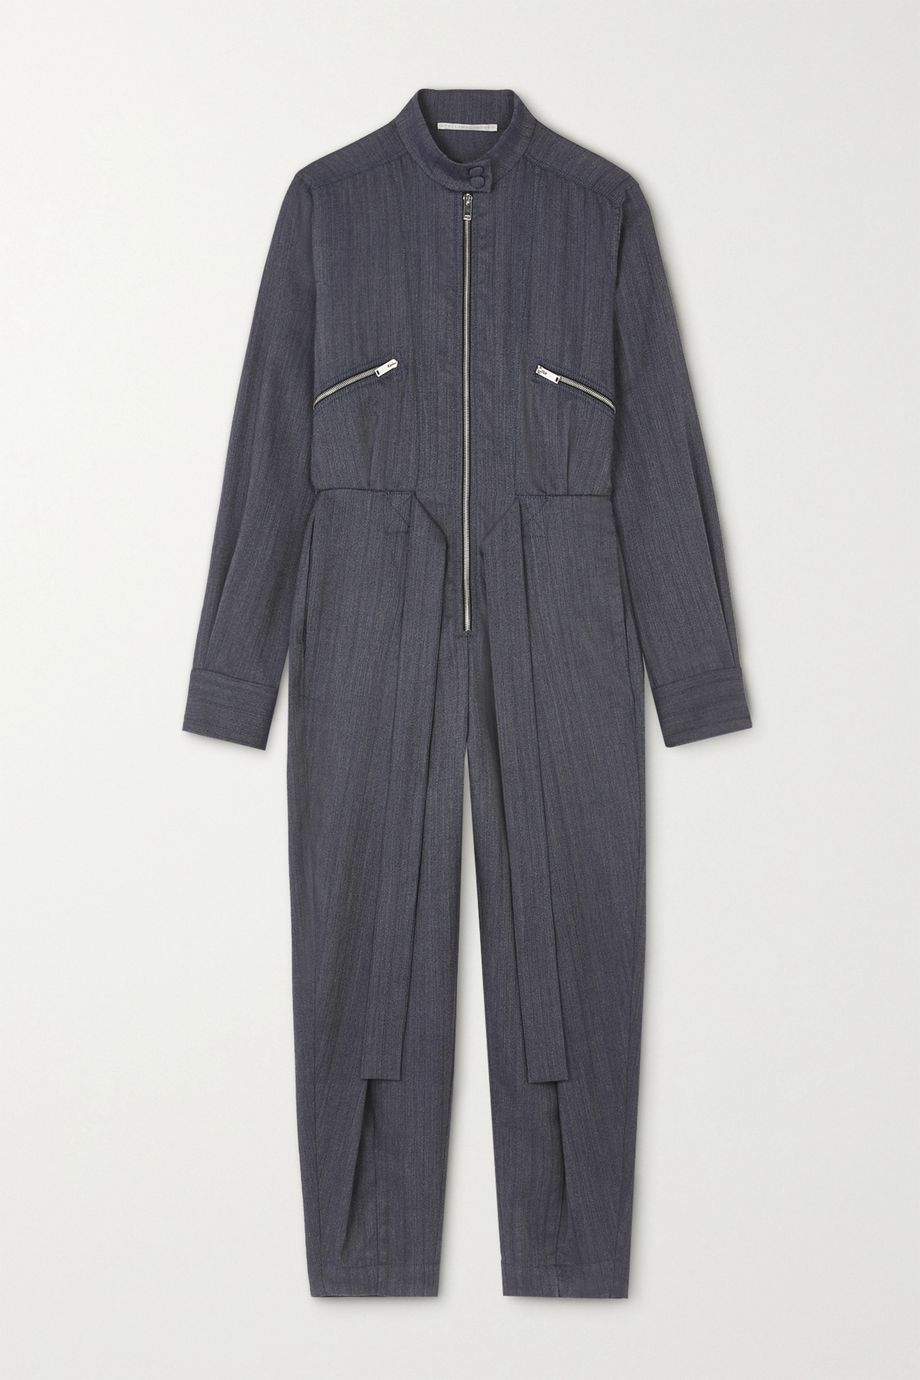 Stella McCartney Brielle belted wool-blend jumpsuit